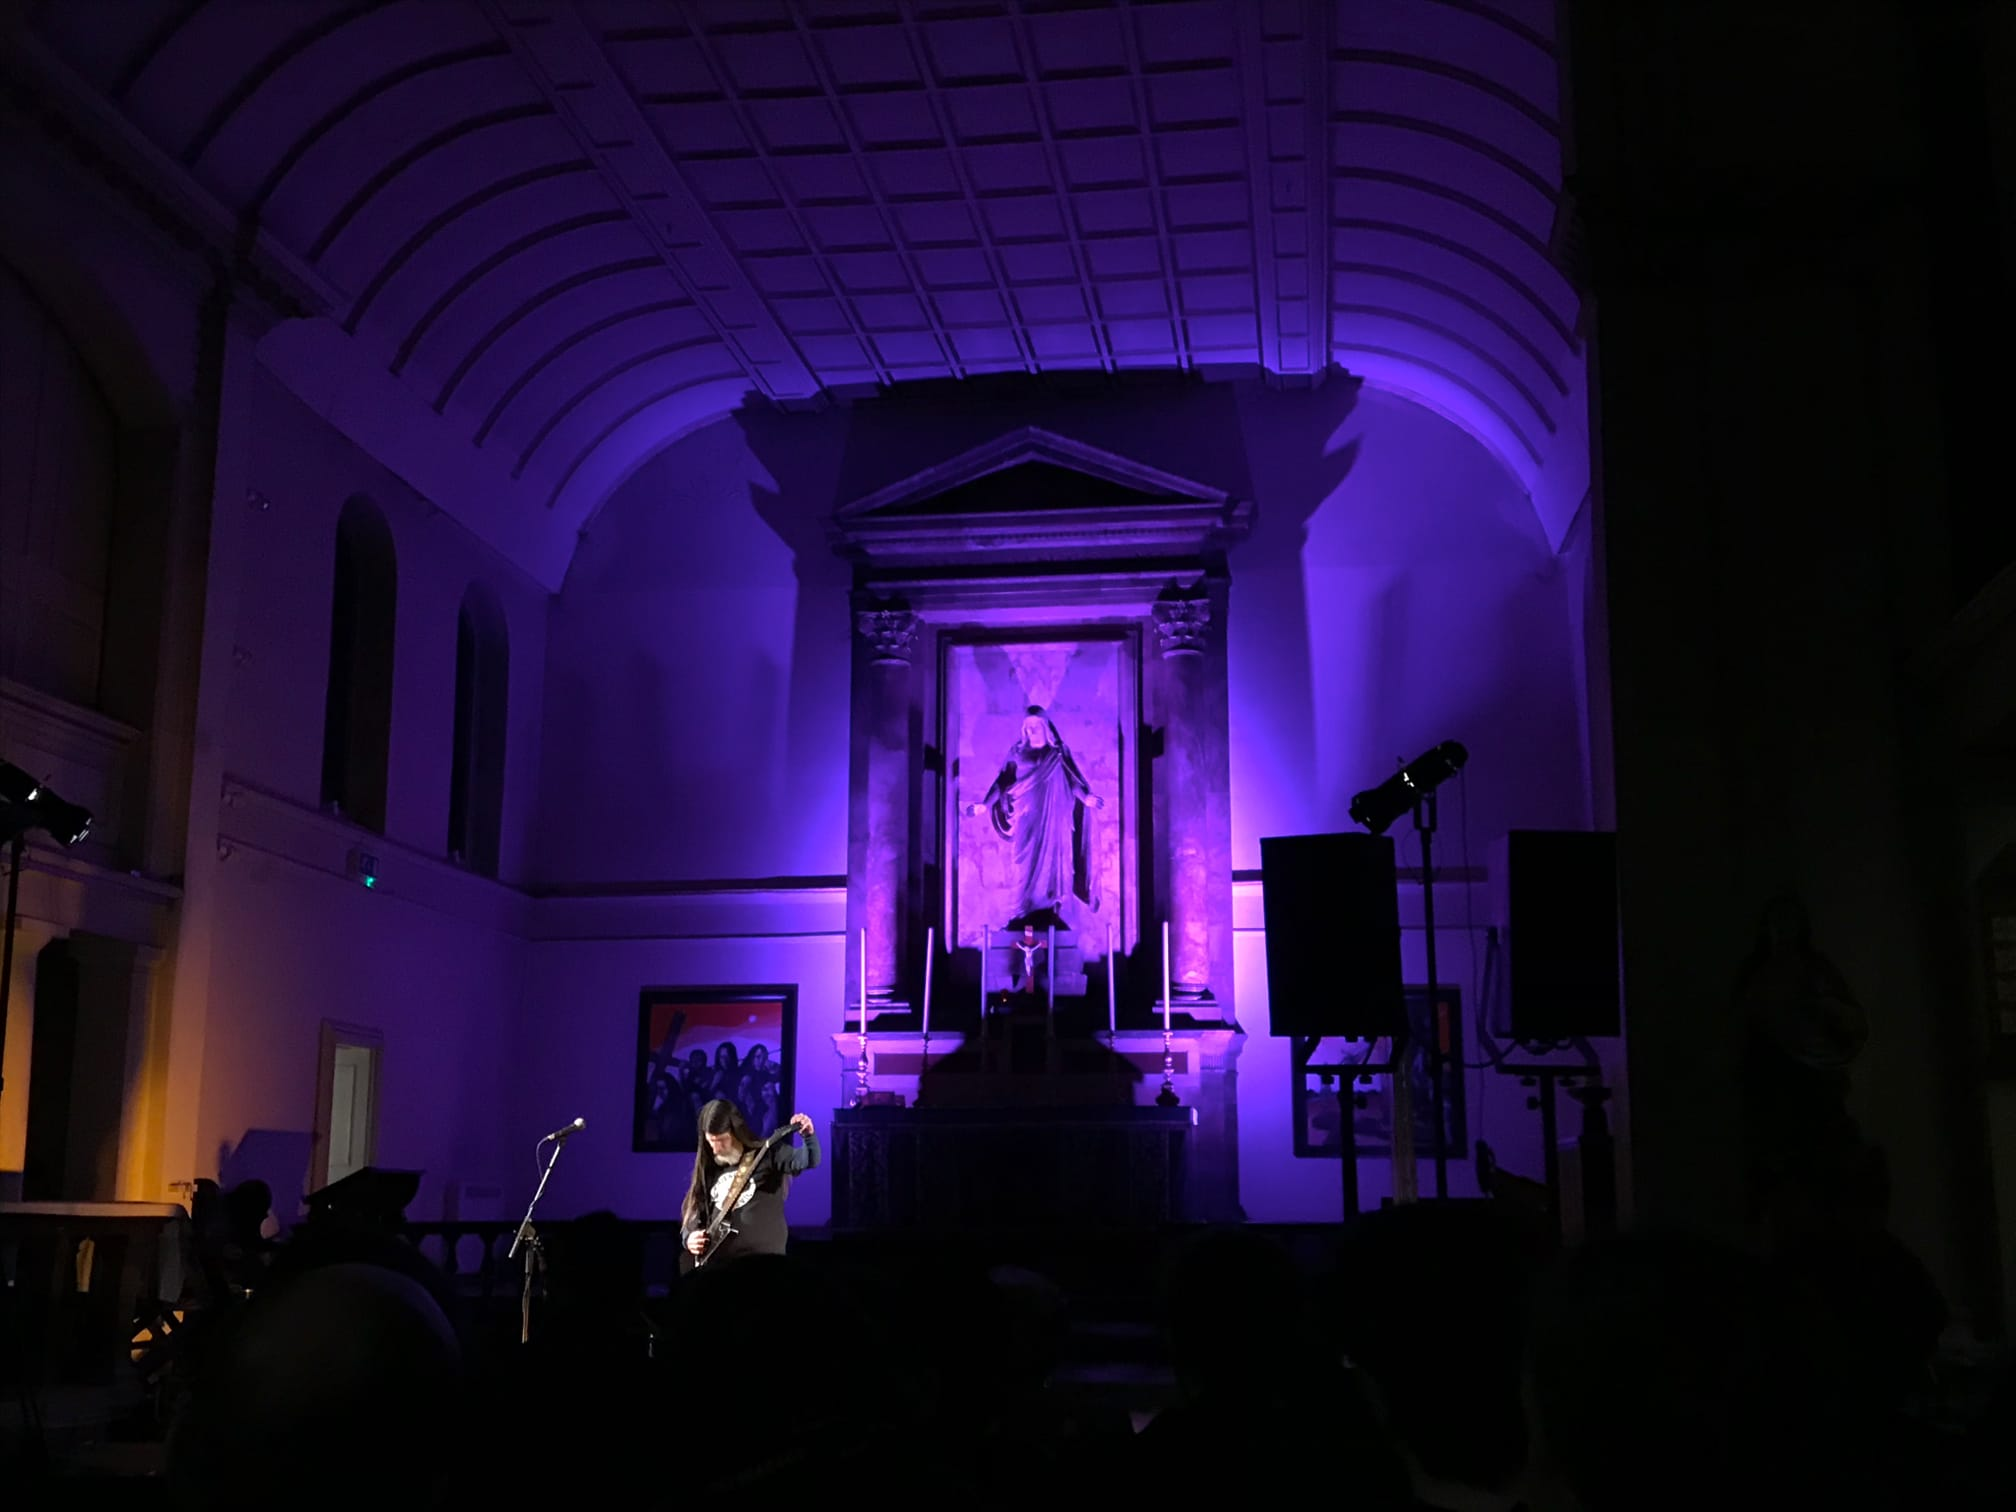 Dylan Carlson tuning his guitar in front of the altar at St John of Bethnal Green church, bathed in purple floodlights